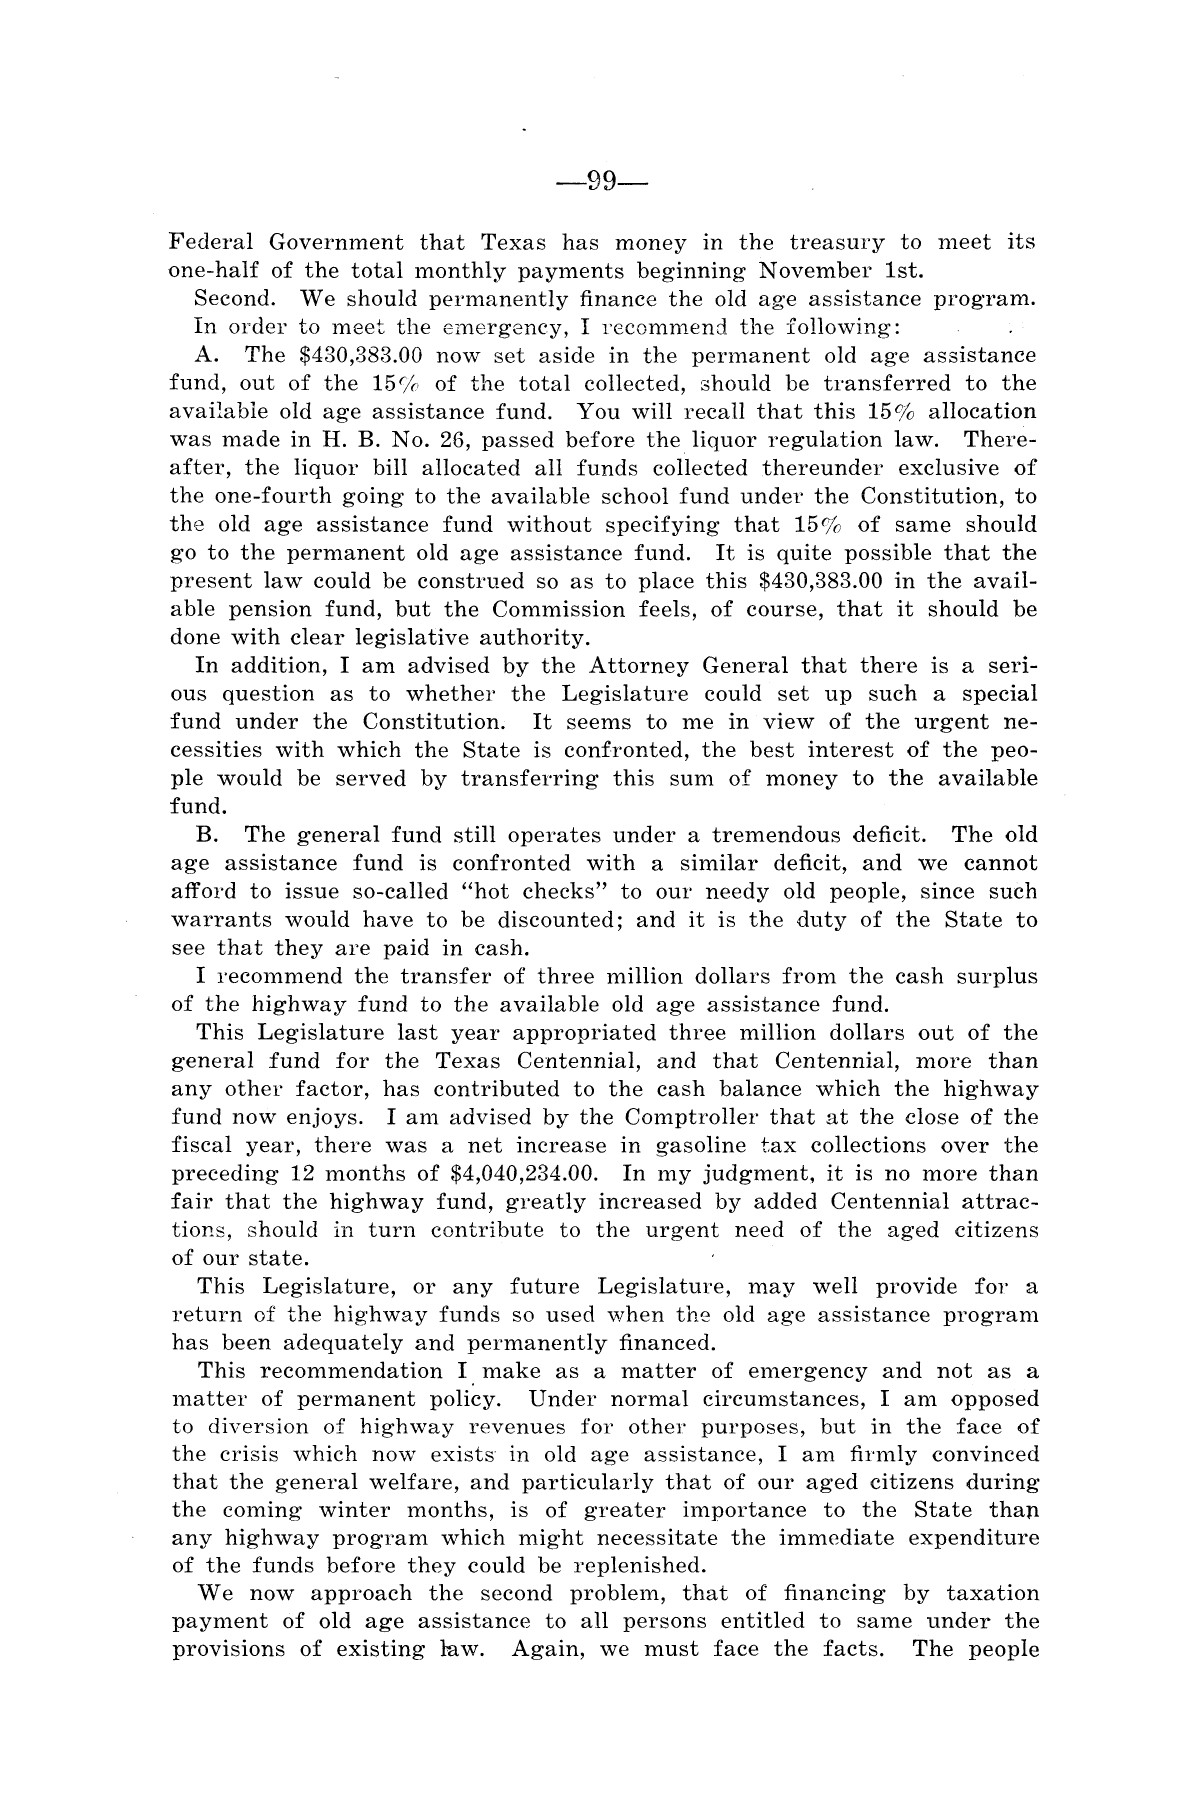 Legislative Messages of Hon. James V. Allred, Governor of Texas 1935-1939                                                                                                      [Sequence #]: 98 of 263